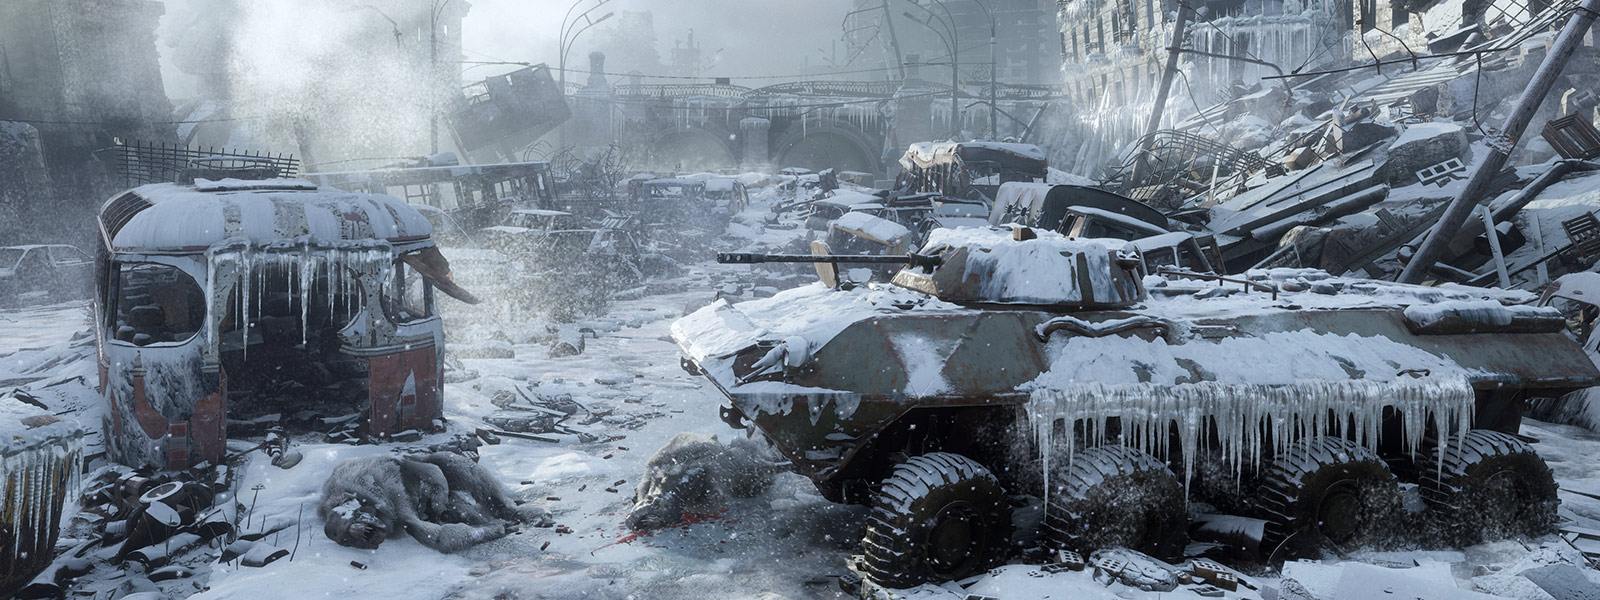 Frozen tank in decimated city